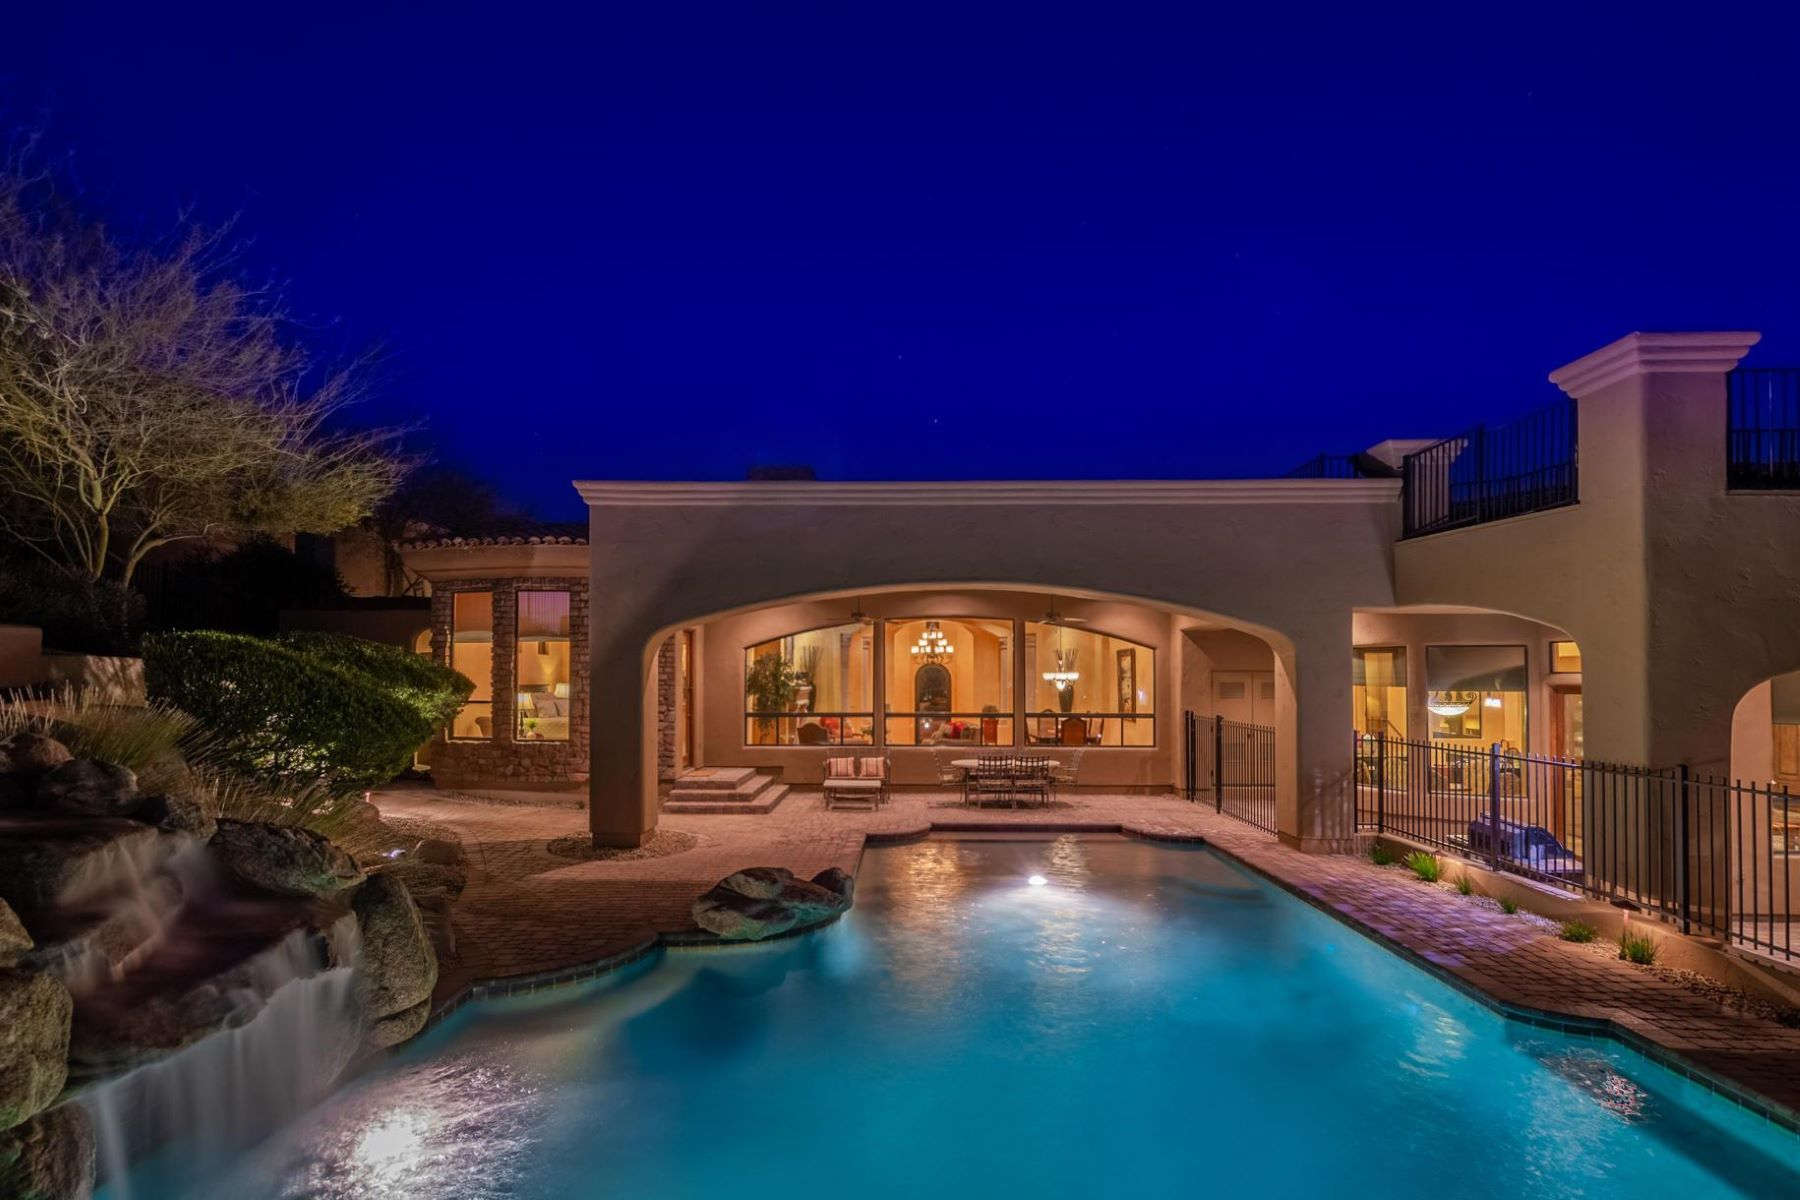 Single Family Homes for Active at Spectacular Views! 4318 N DESERT OASIS CIR Mesa, Arizona 85207 United States